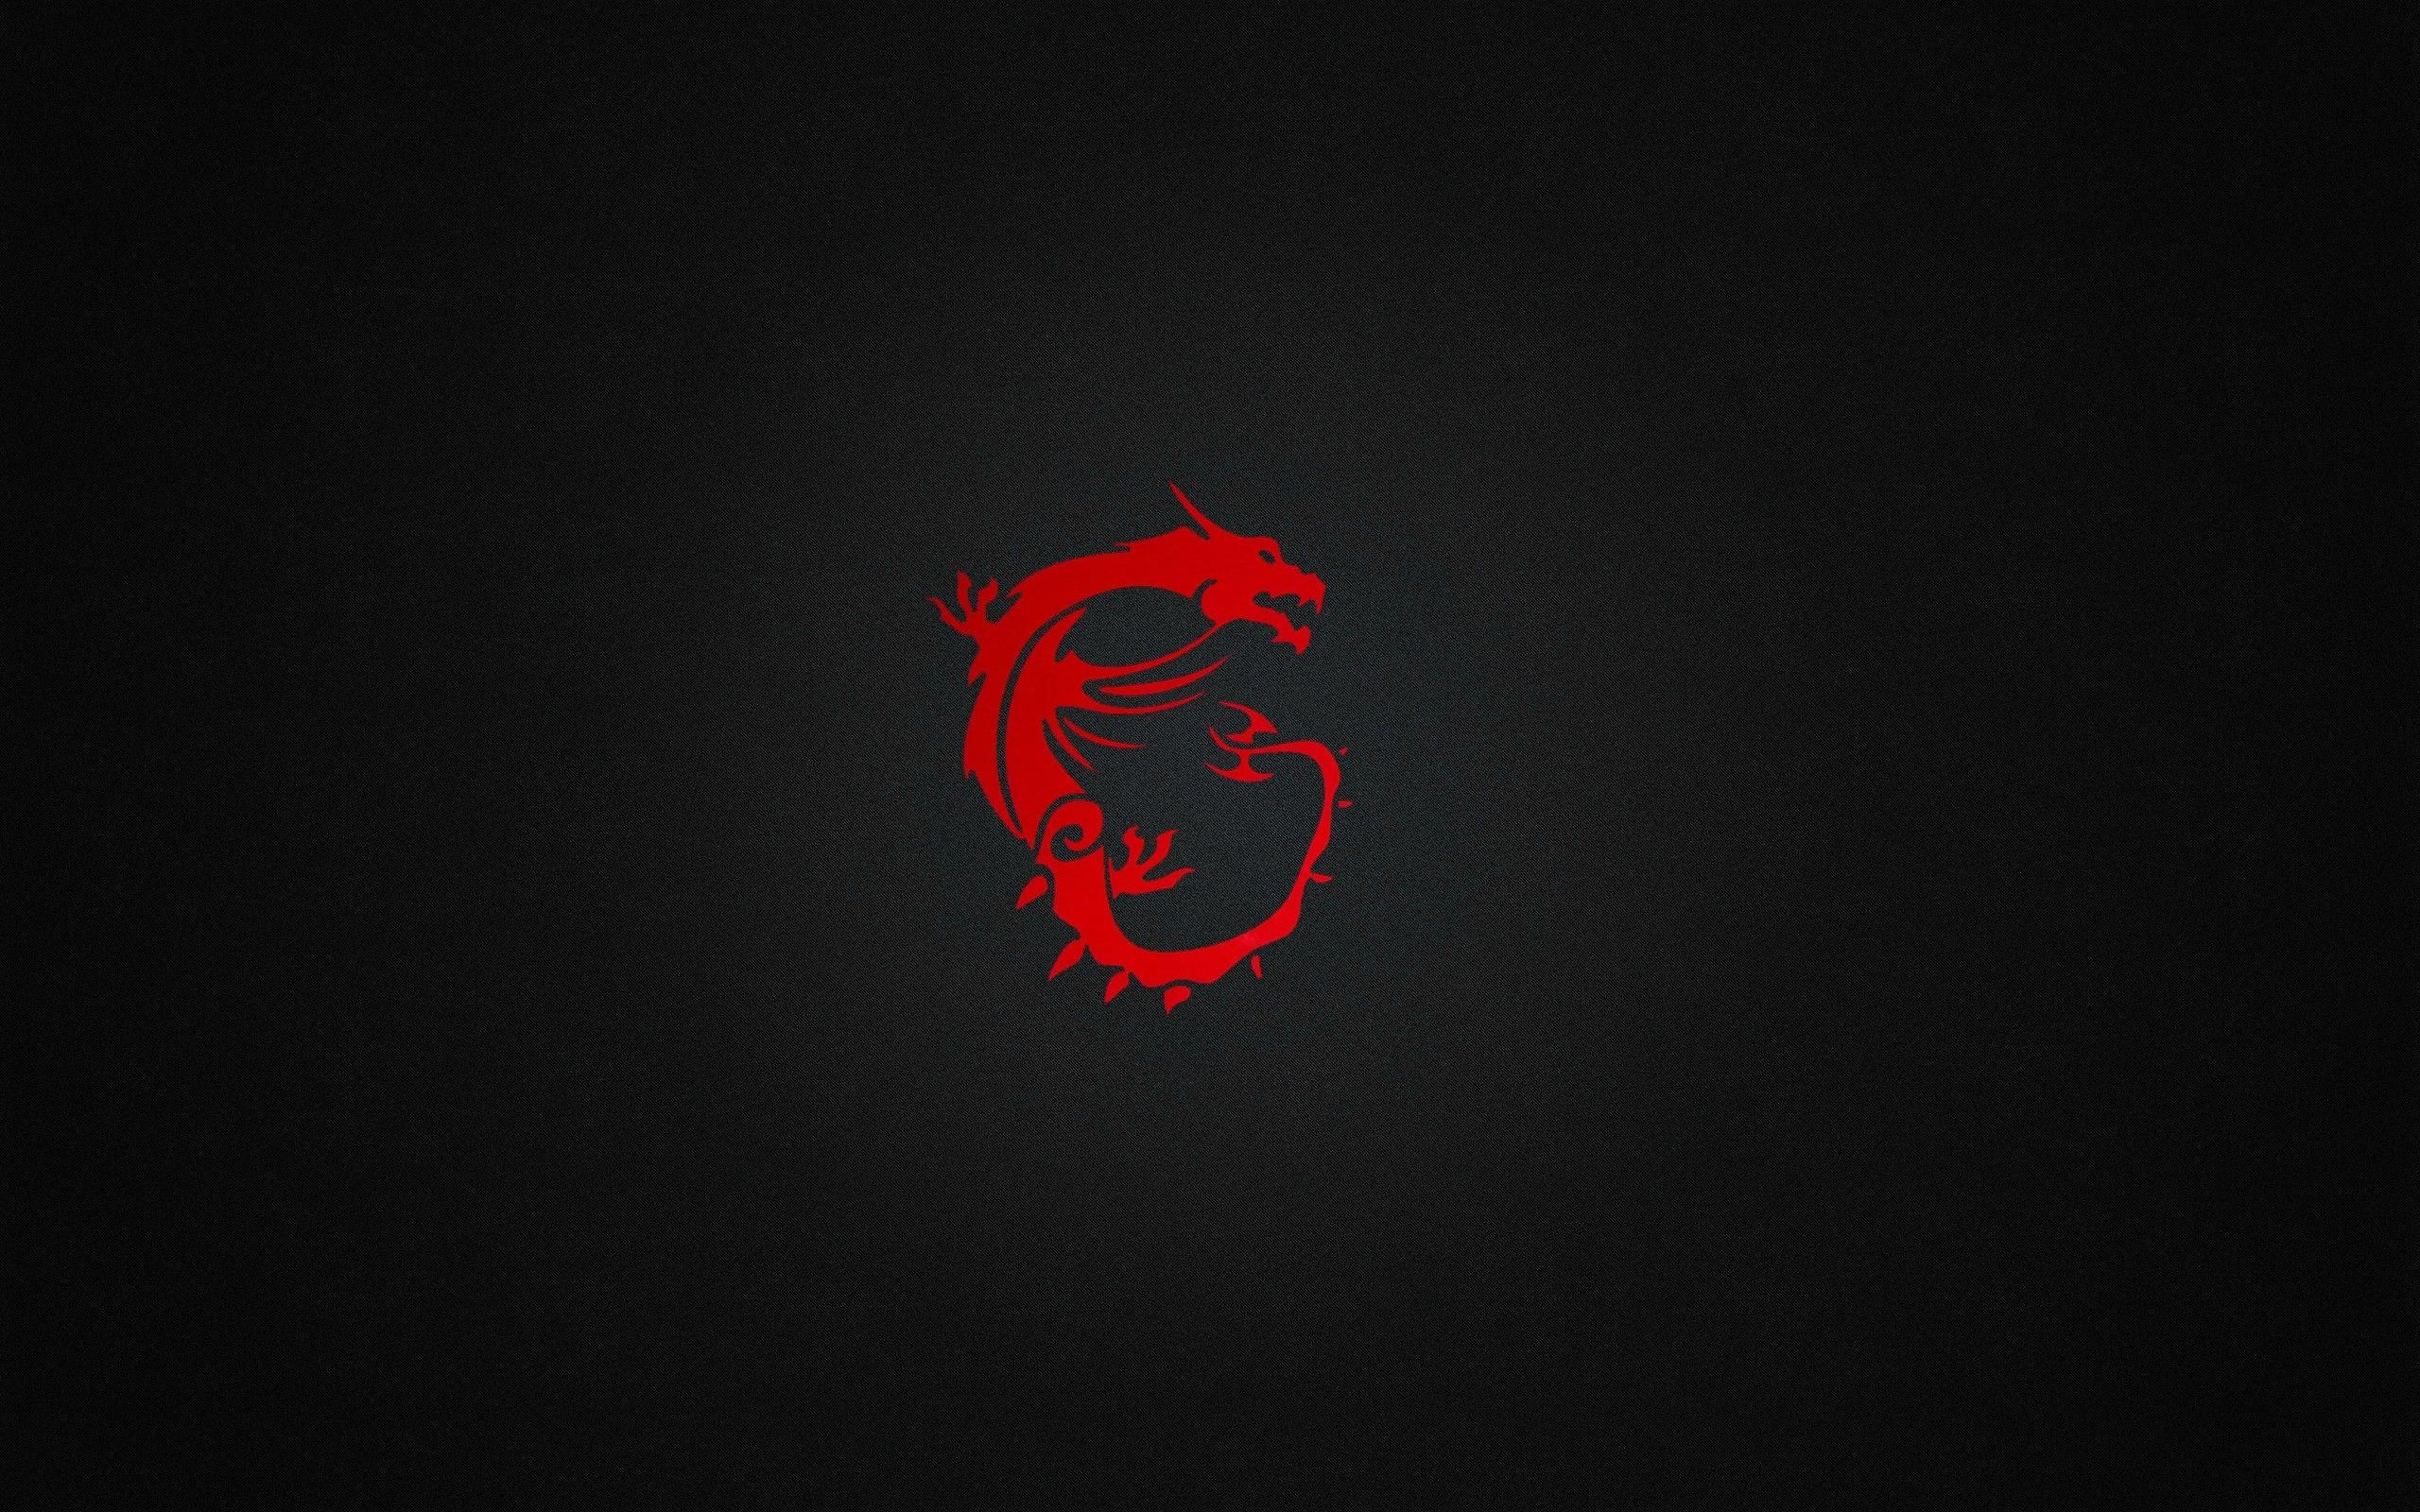 10 New Msi Gaming Series Wallpaper Full Hd 1920 1080 For: MSI Wallpaper 17